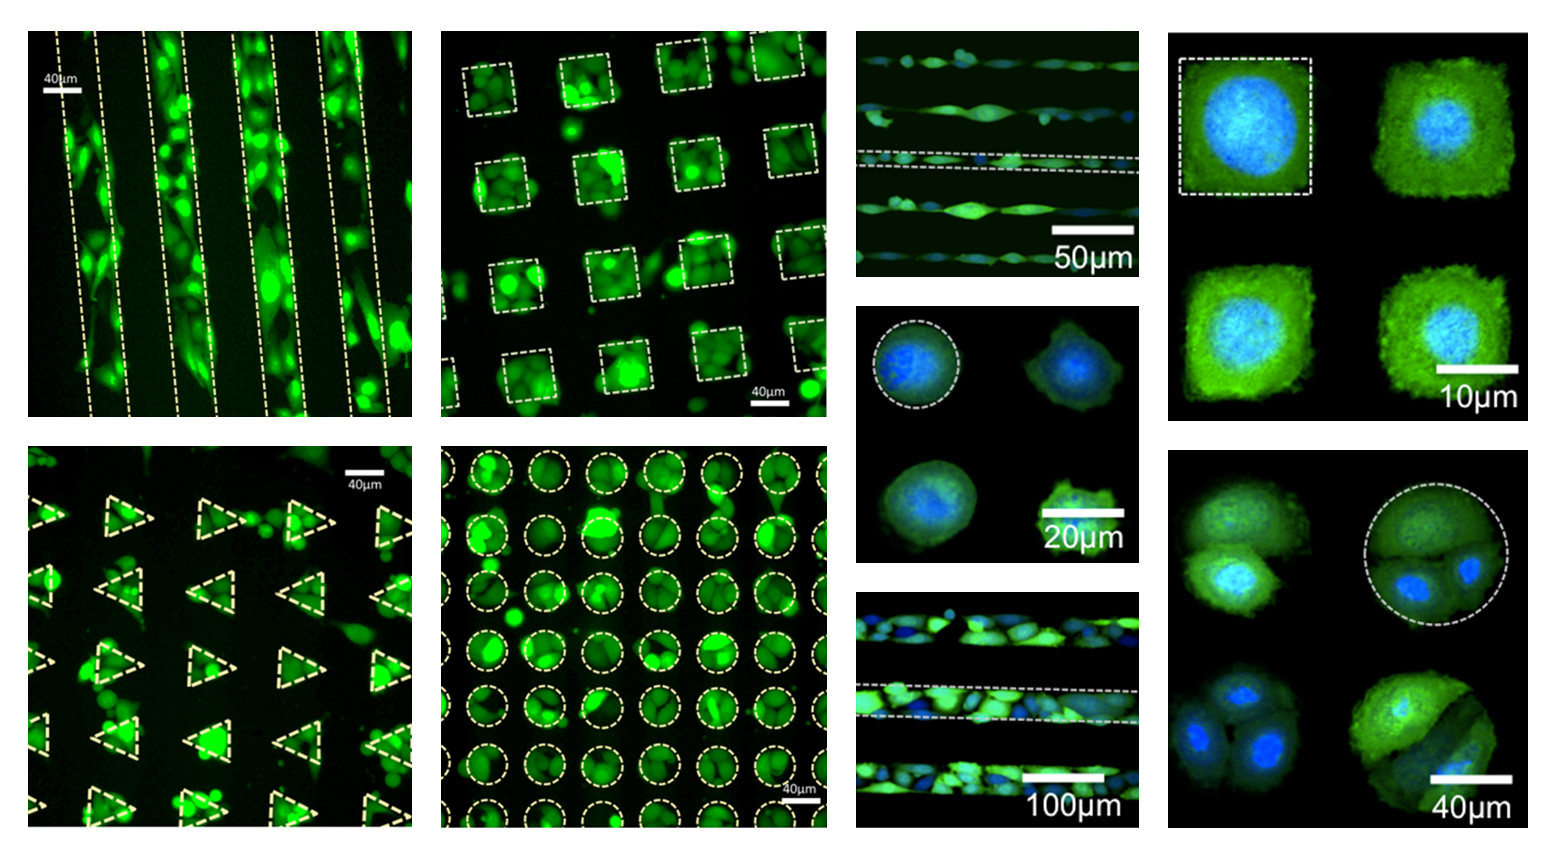 cells patterned with InnoStamp40